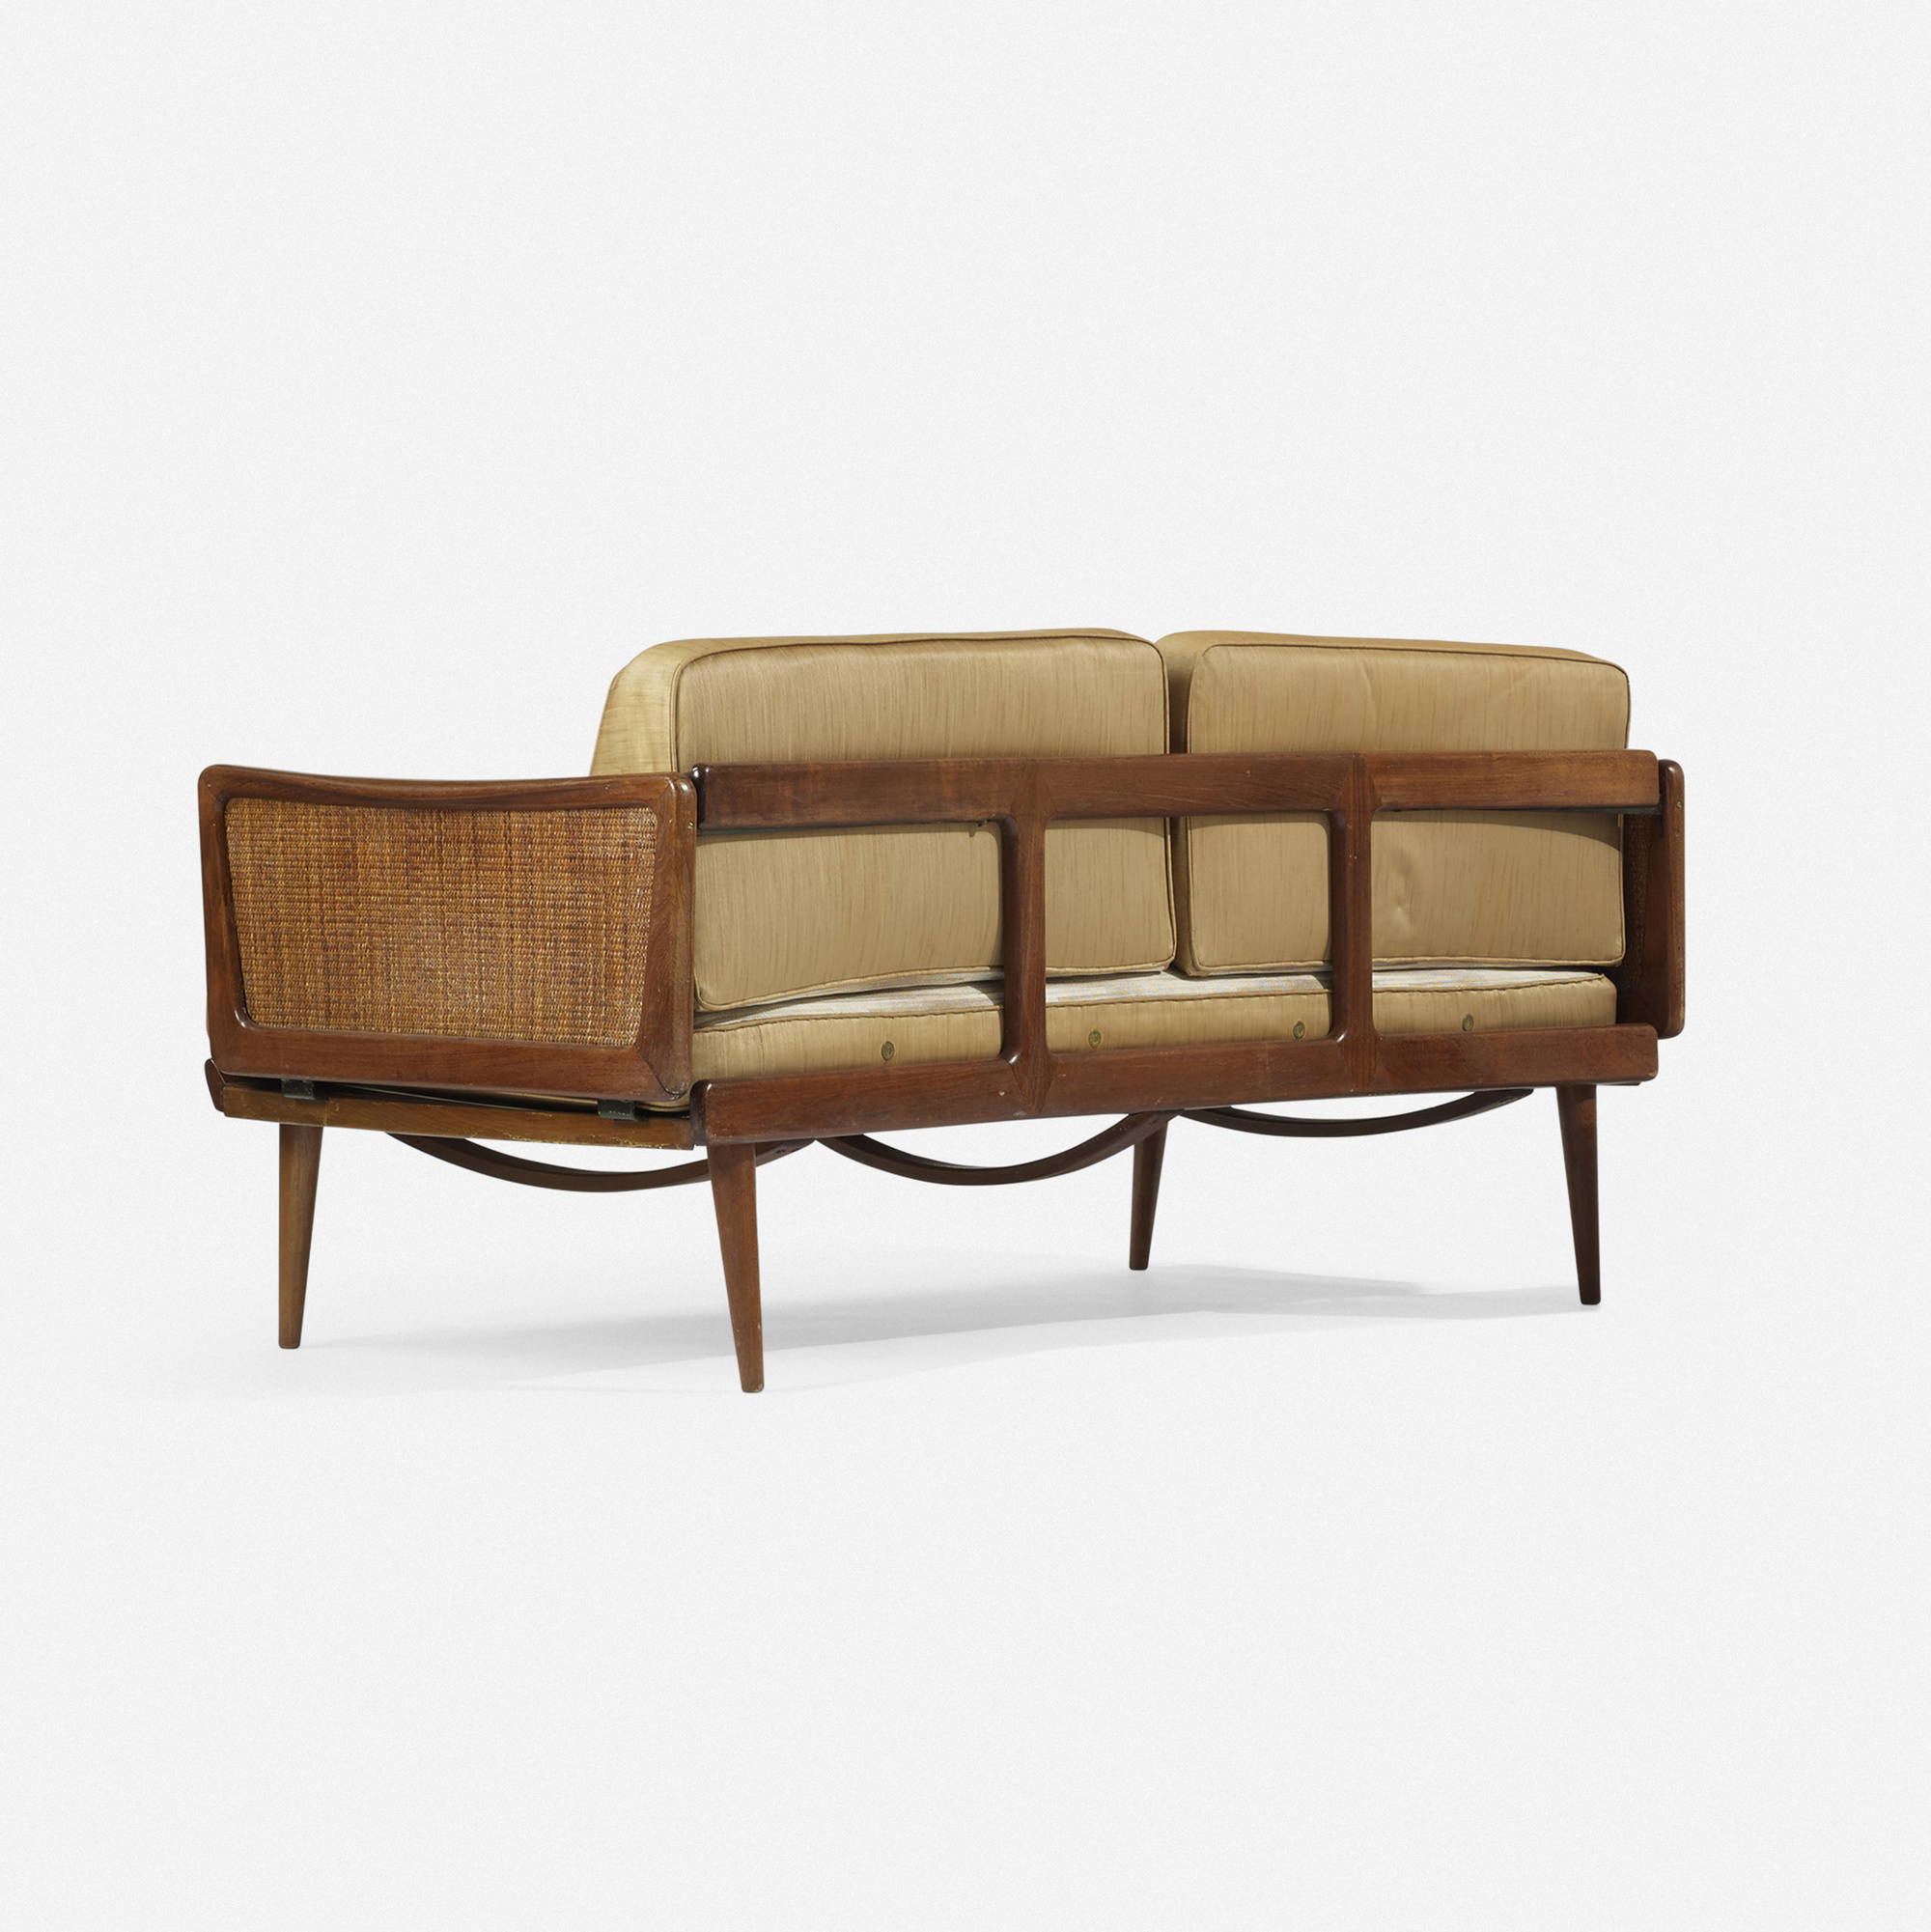 364: Peter Hvidt / daybed, model FD 451 (2 of 4)